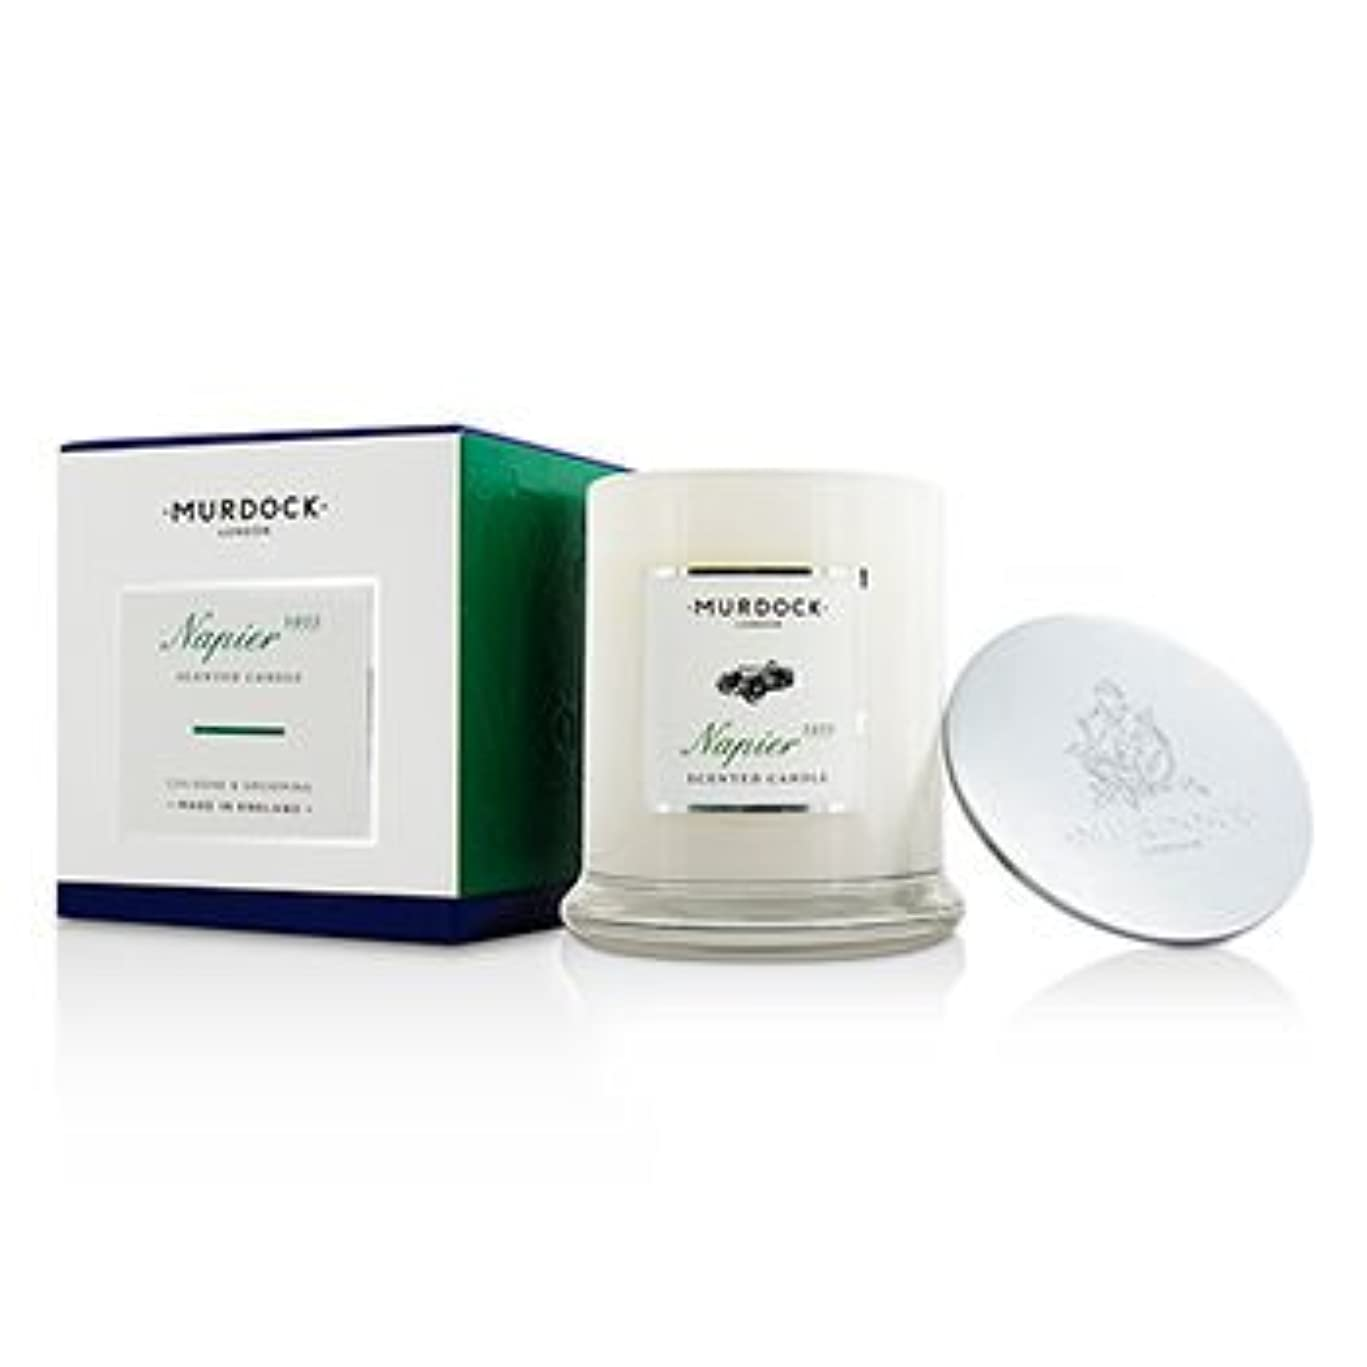 [Murdock] Scented Candle - Napier 260g/9.17oz